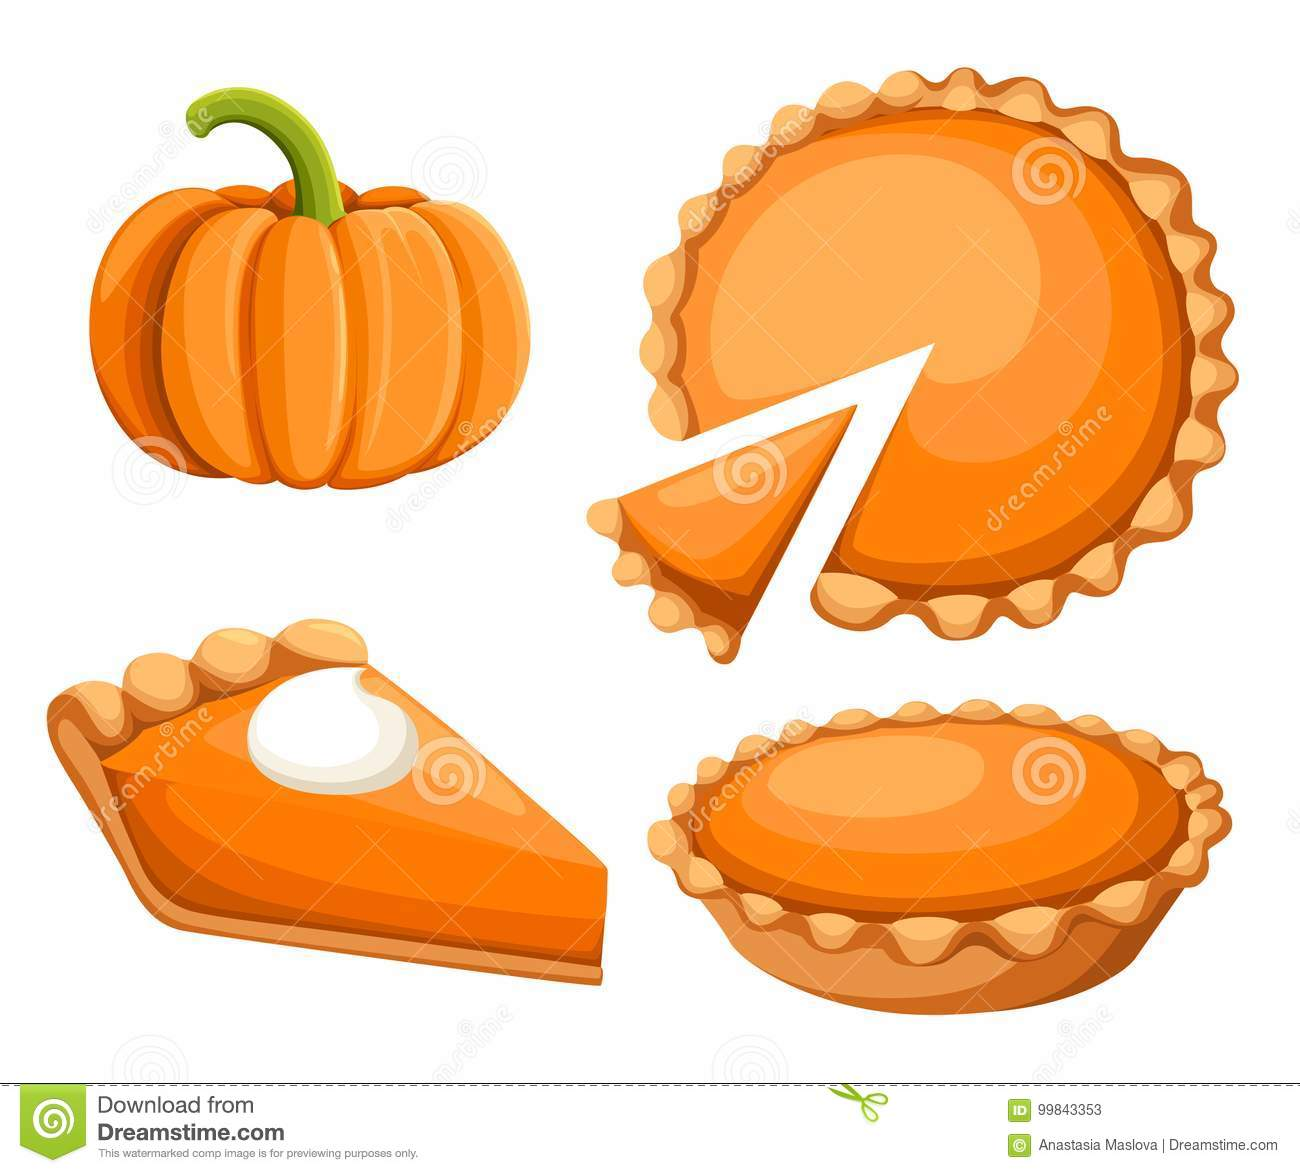 hight resolution of pies vector illustration thanksgiving and holiday pumpkin pie happy thanksgiving day traditional pumpkin pie